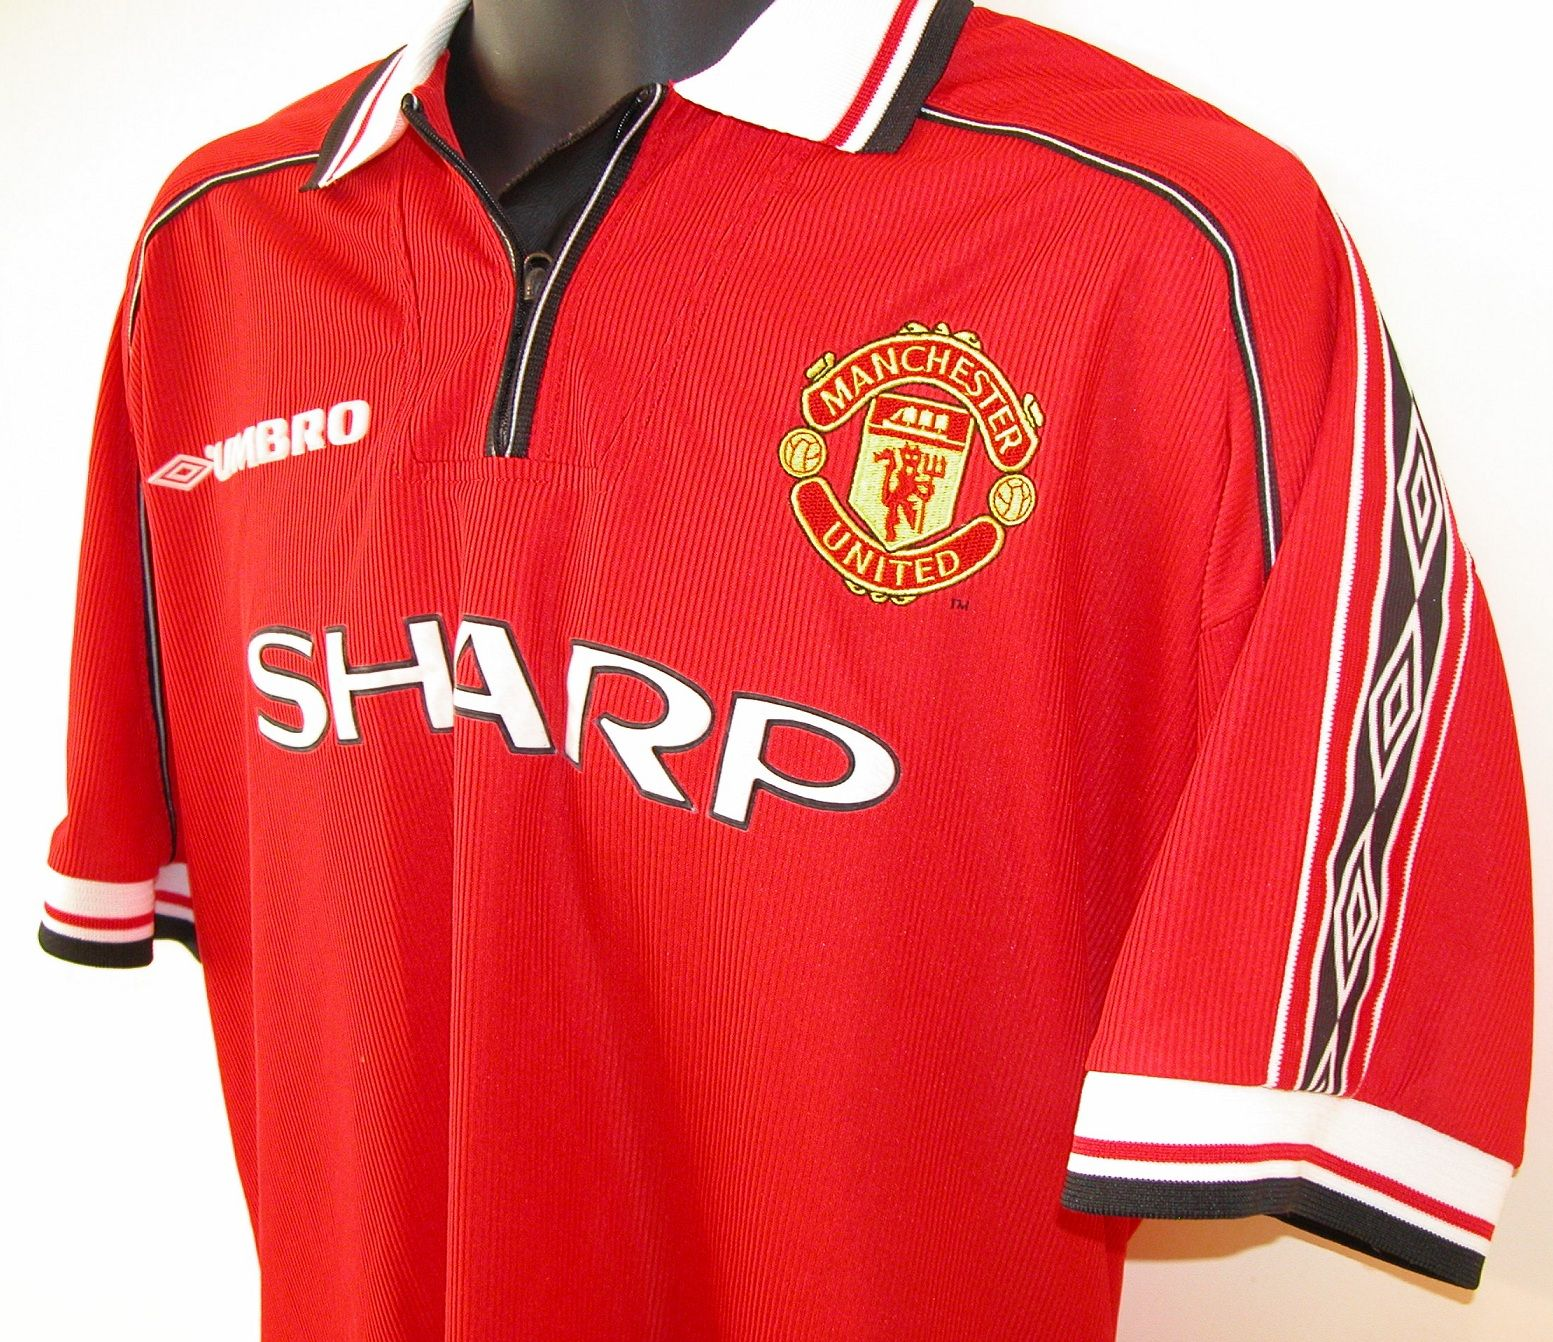 360493c005a 1999 Manchester United  Treble  shirt by Umbro